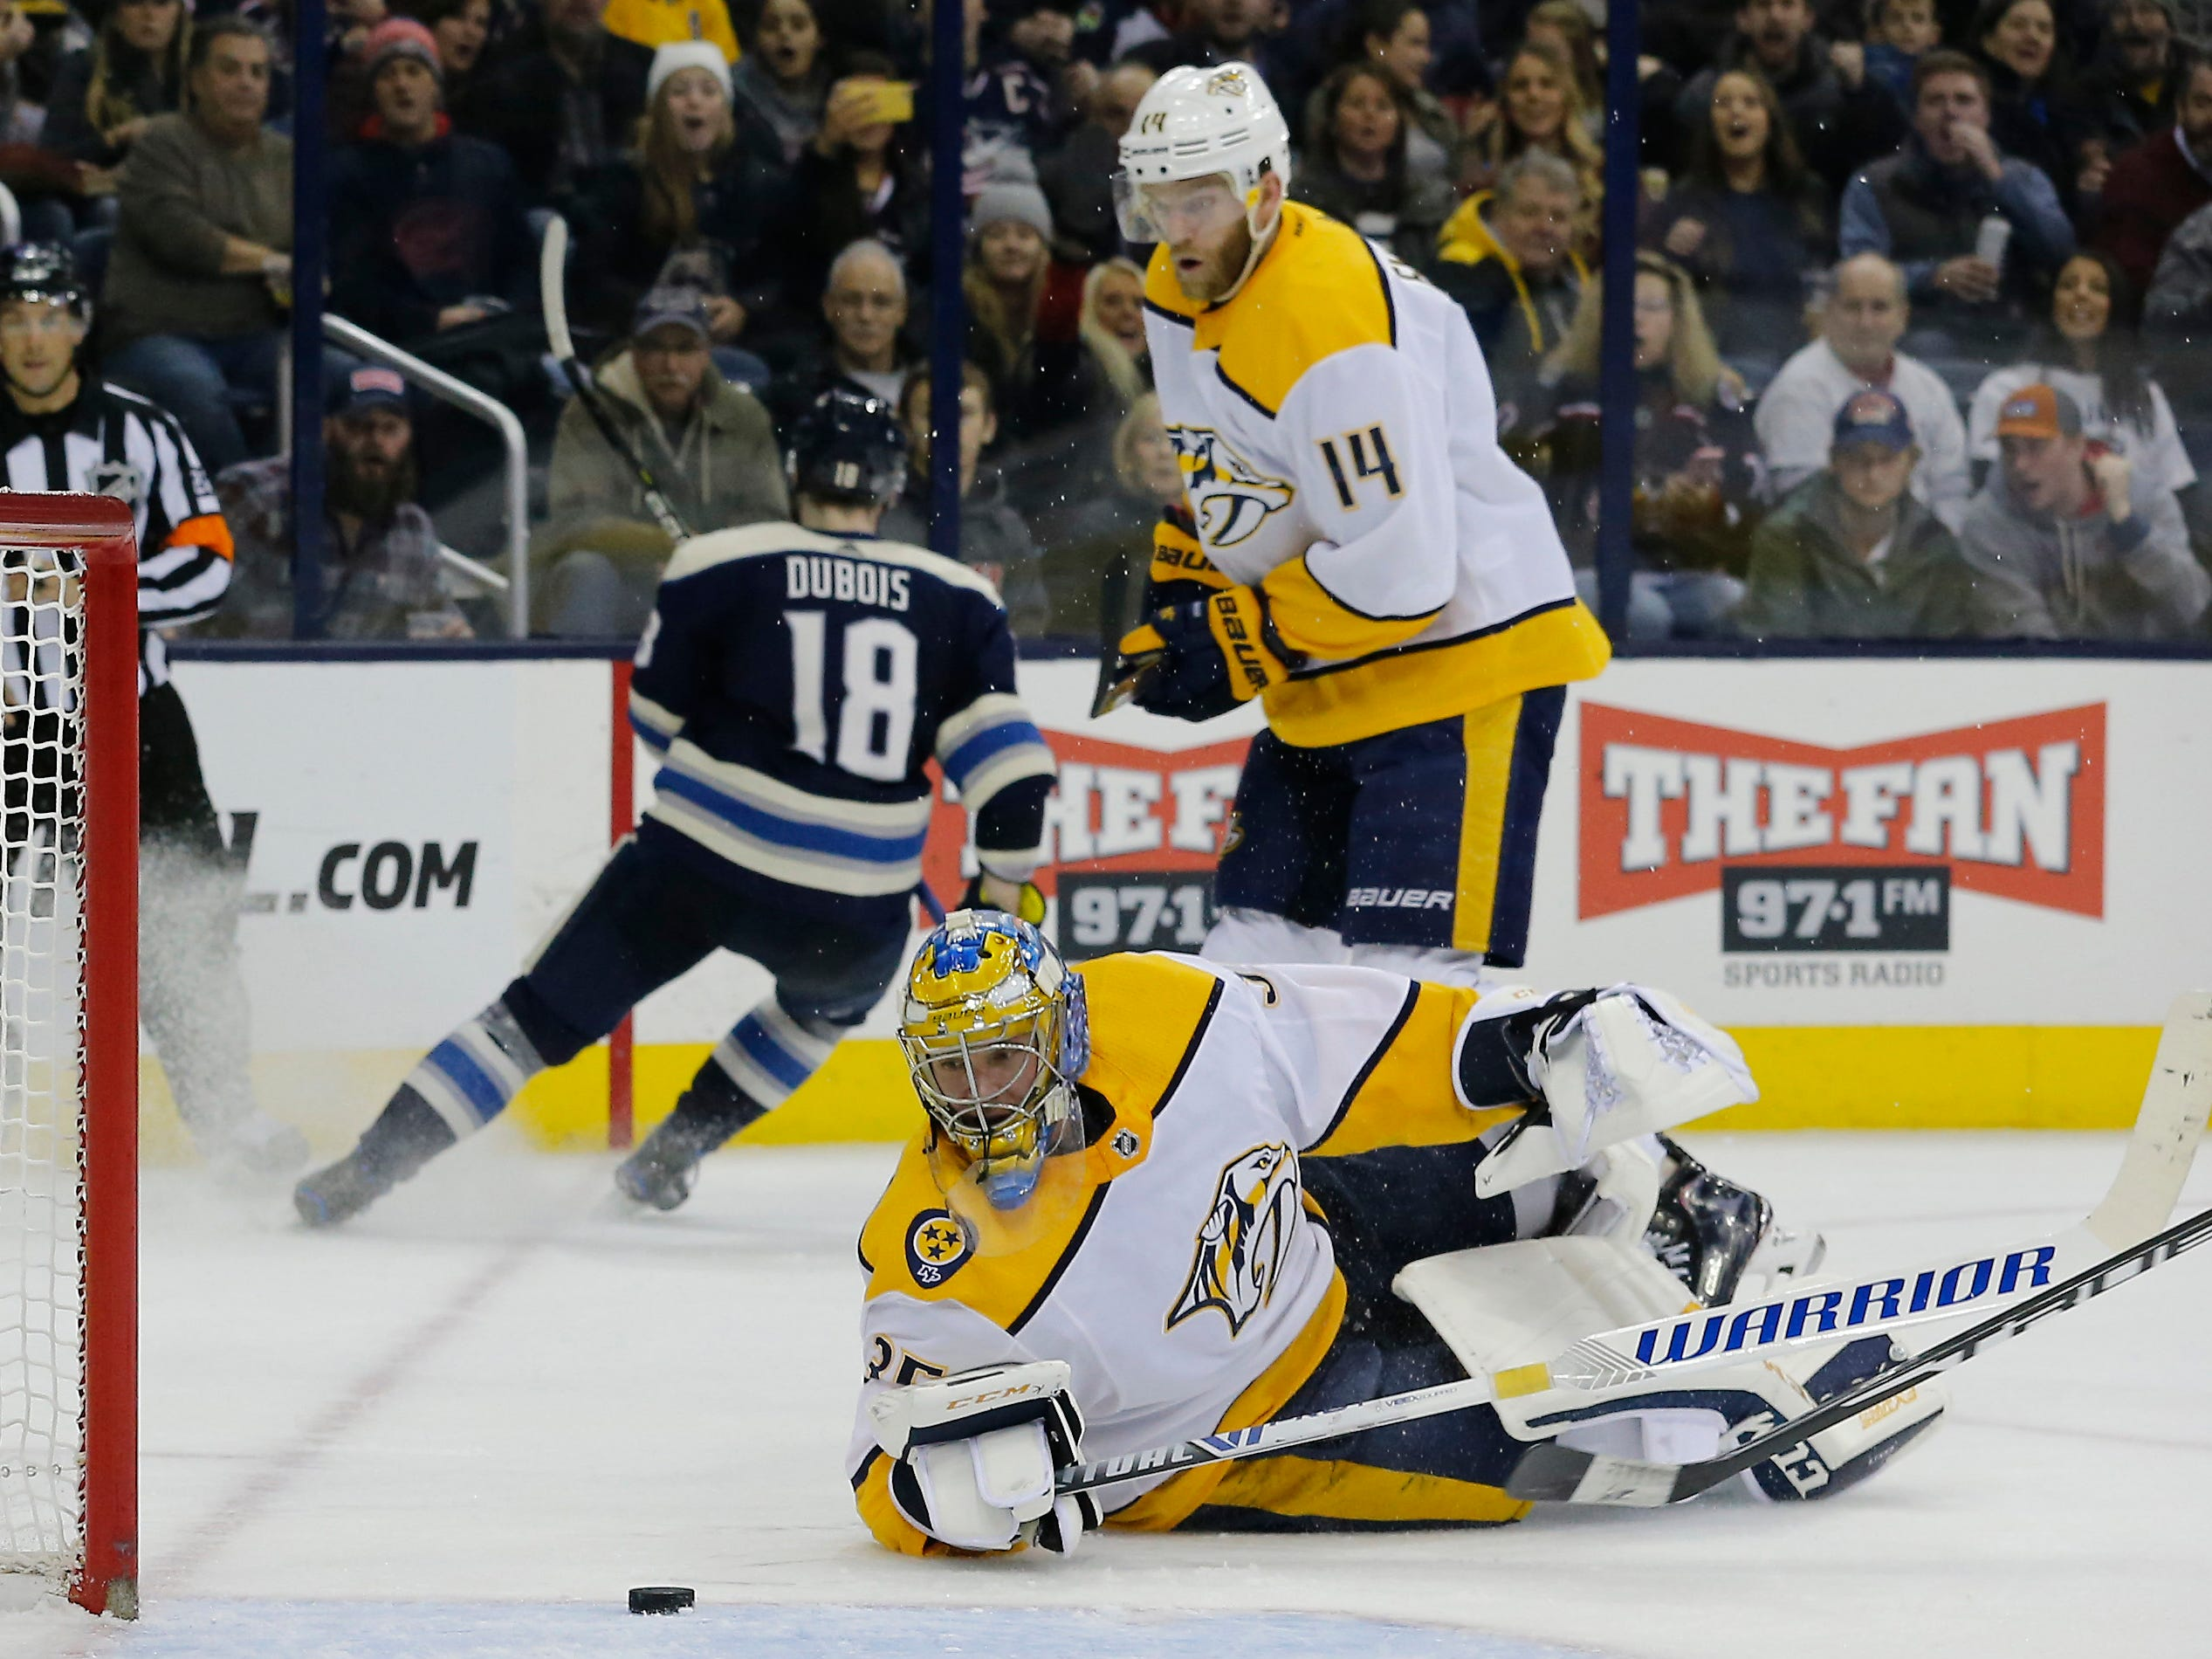 Nashville Predators goalie Pekka Rinne (35) tracks the loose puck in the crease against the Columbus Blue Jackets during the second period at Nationwide Arena.